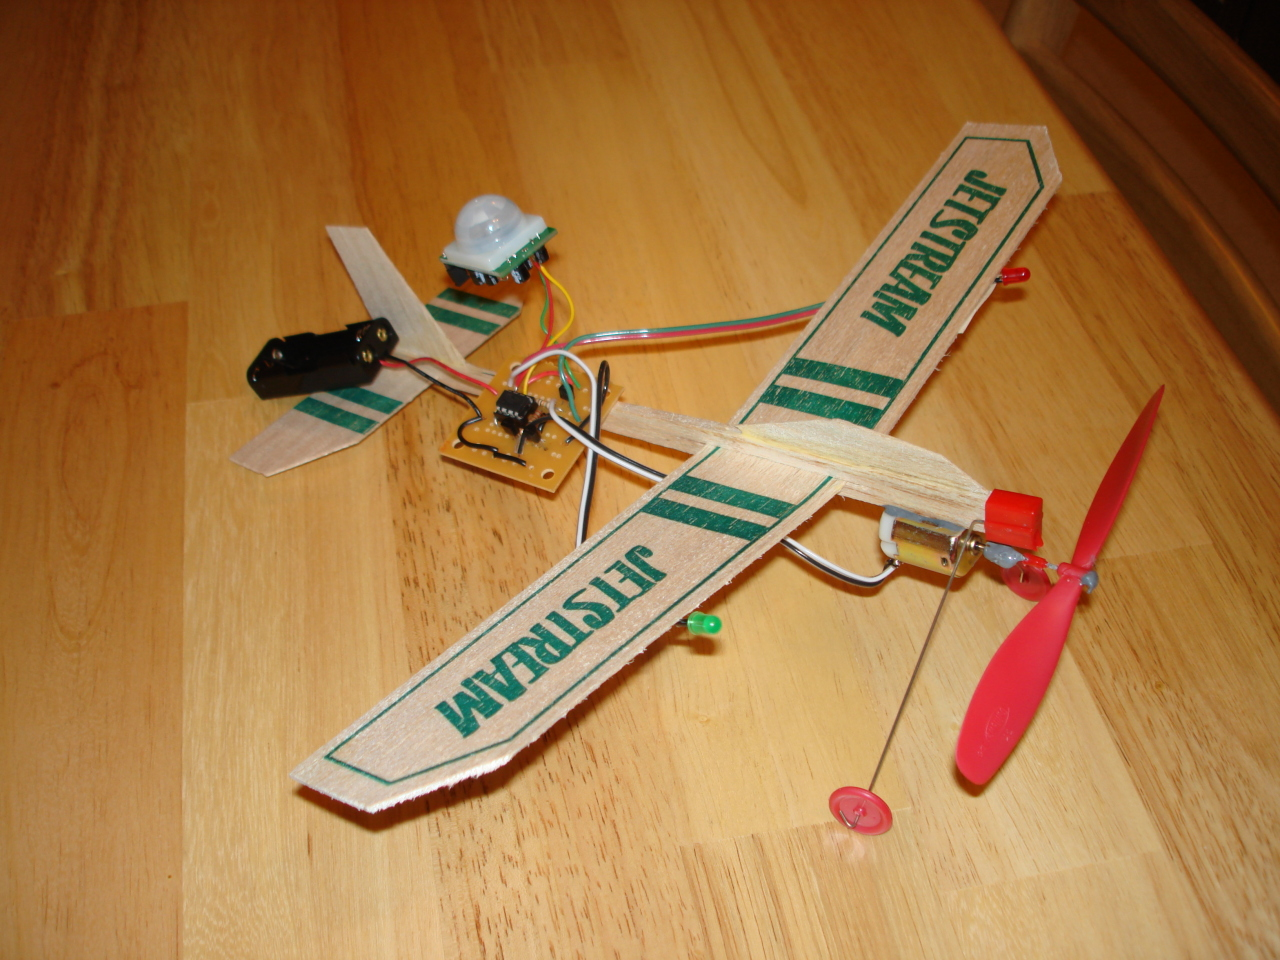 greatplanes com with Img Ba Balsa Model Airplane Plans on Ts 21 Gold Glaenzend 100 Ml besides Watch besides Amati lingua ita in addition Multiplex Cockpit SX7 Einzelsender Mit Touchscreen in addition 20151 Gpma1260 Greatplanes Proud Bird Ef1 Racer Sport Arf.